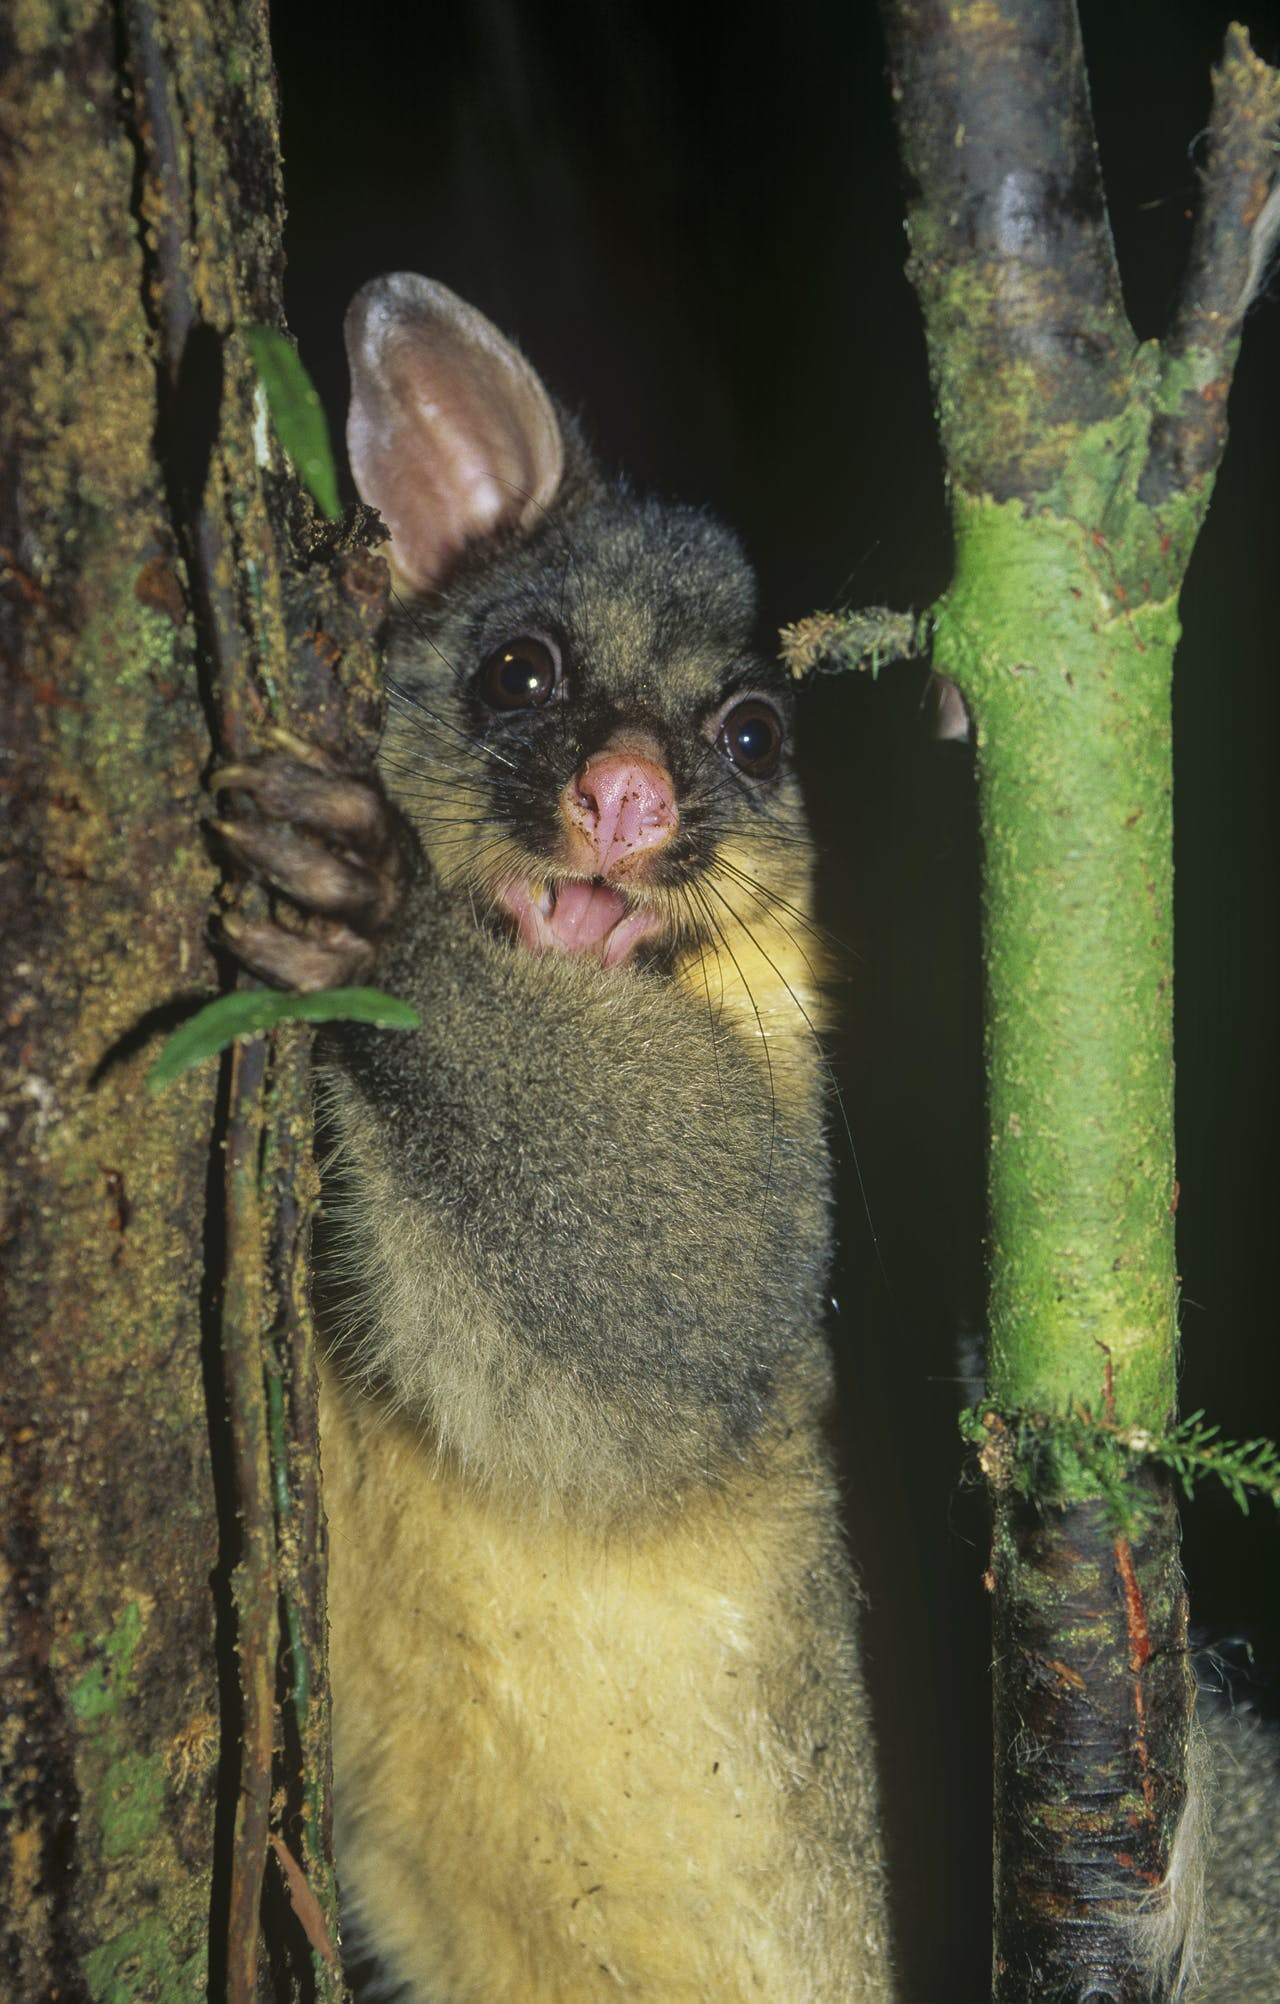 Possum, Moetoa Forest, King Country. Photo: Shaun Barnett